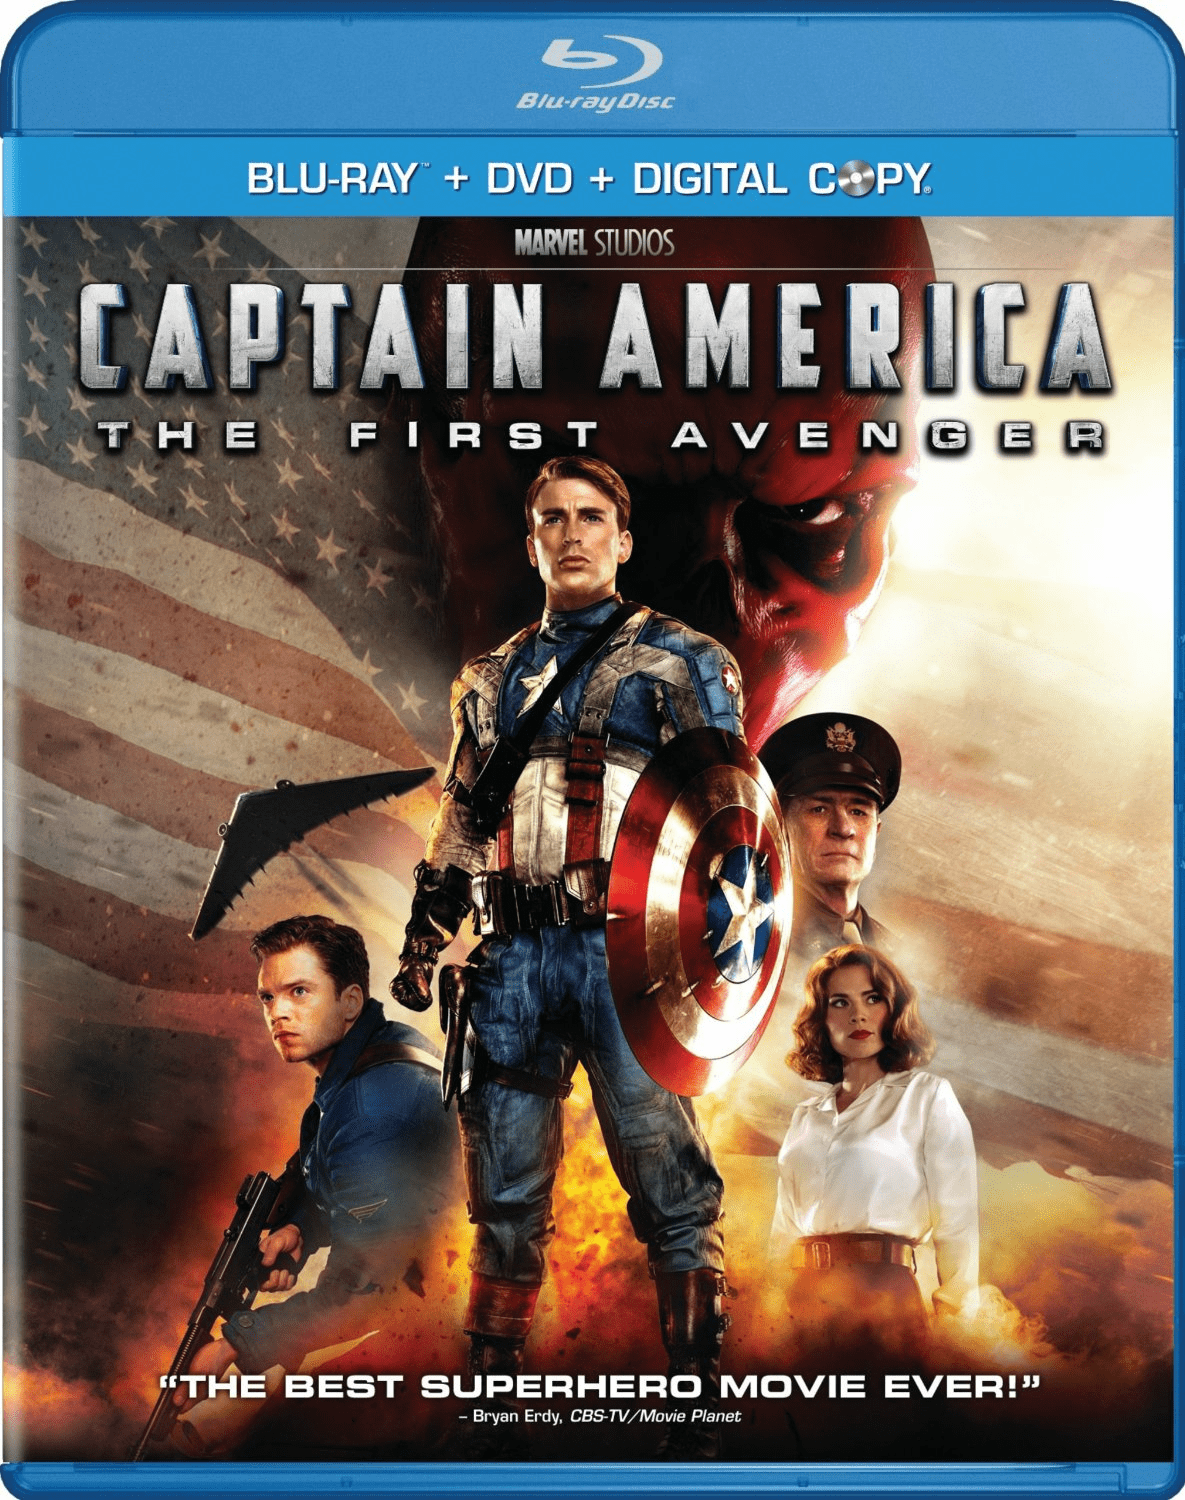 Captain America The First Avenger Blu-ray + DVD + Digital Copy